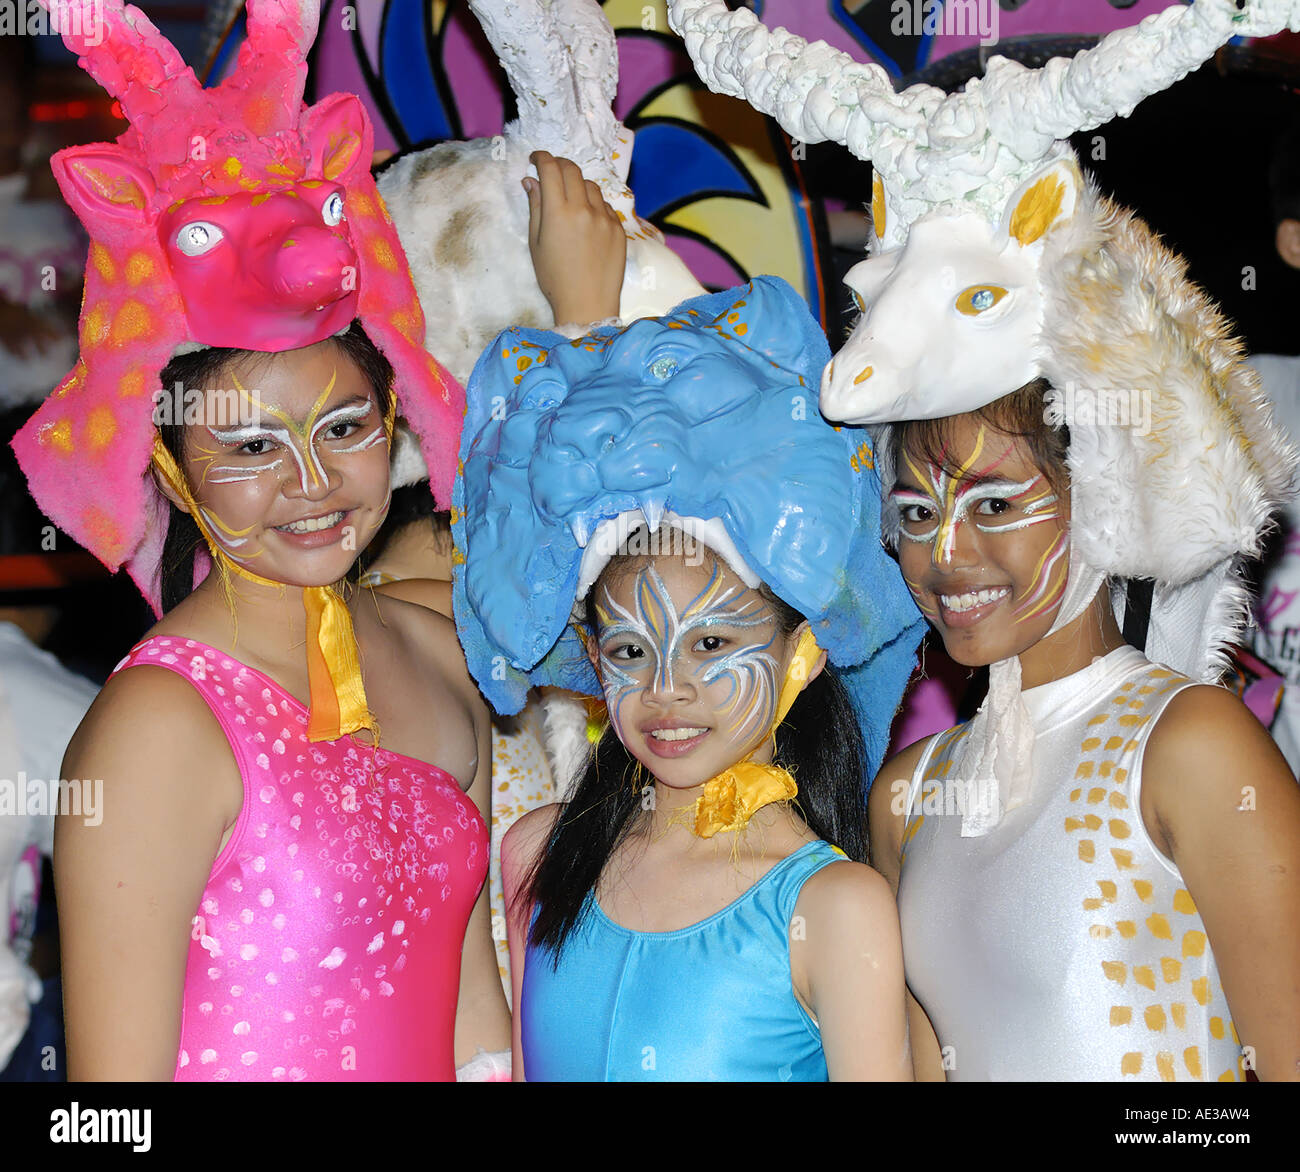 Fancy Dress Party In Theme Stock Photos & Fancy Dress Party In Theme ...